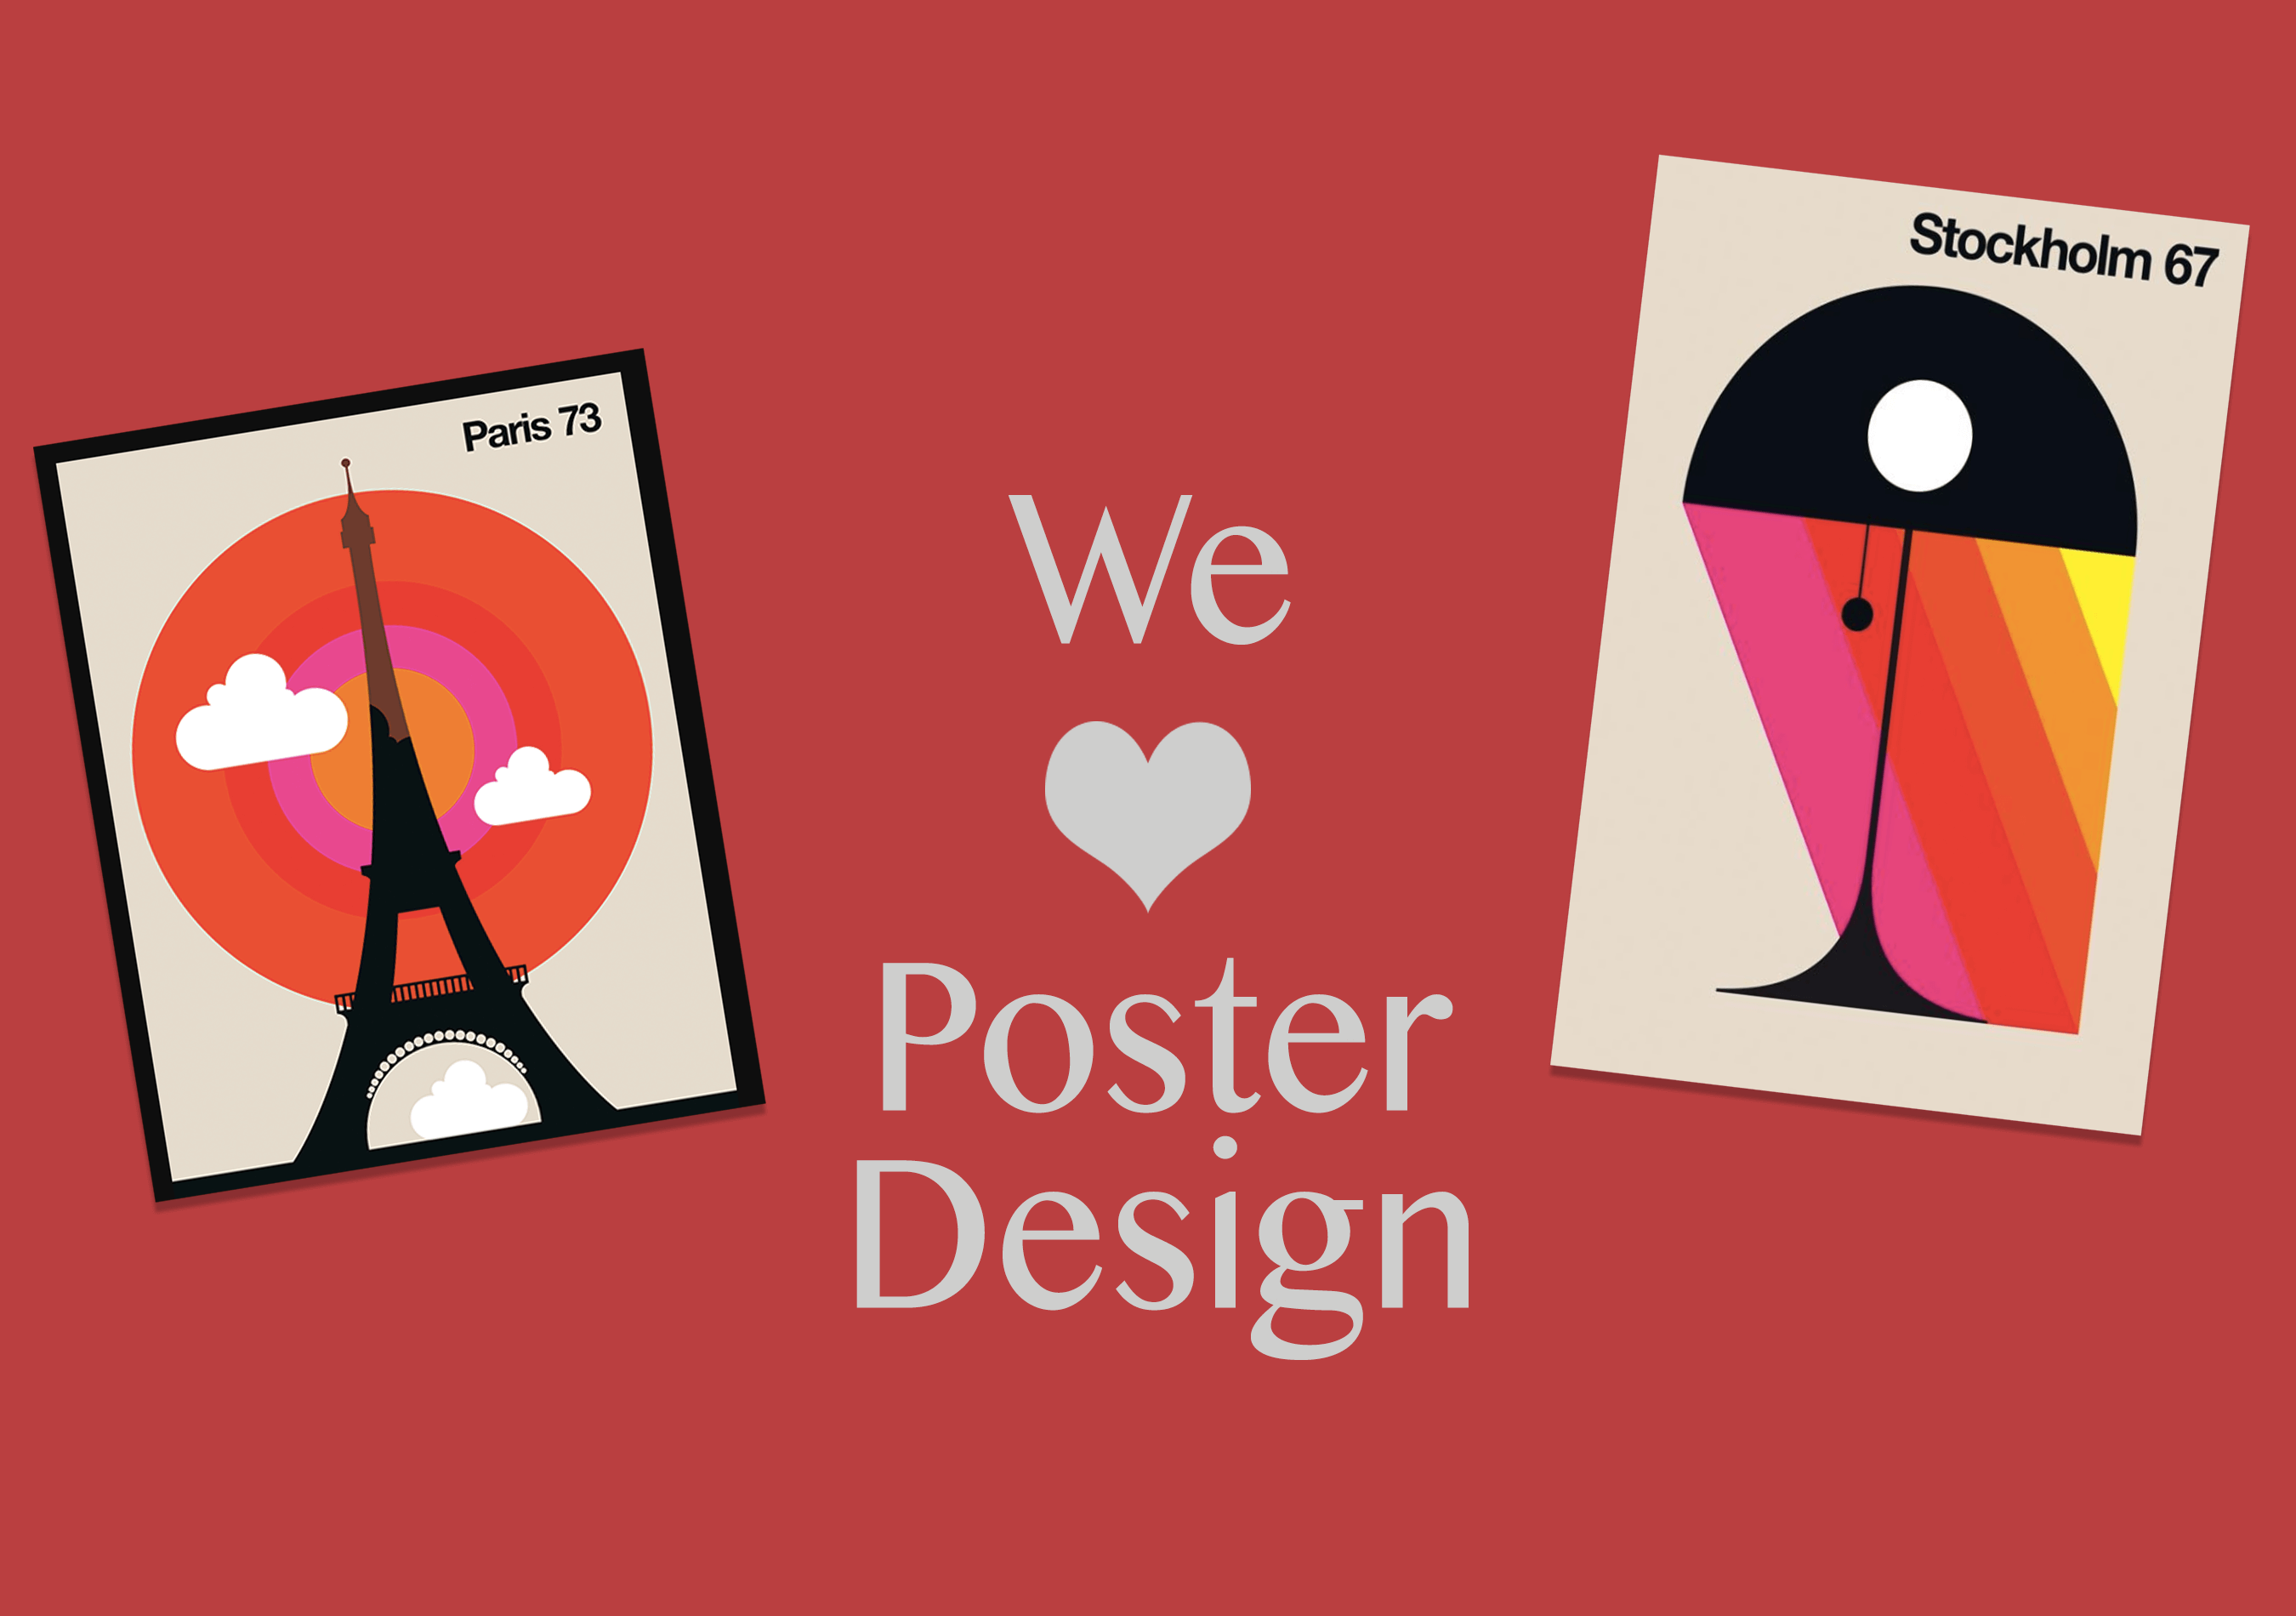 One Of Our Favorite Forms Of Design Here At Wooster Creative Is Poster  Design. From Pop Art Concepts To Pharmaceutical Companies, Weu0027ve Always  Loved The ...